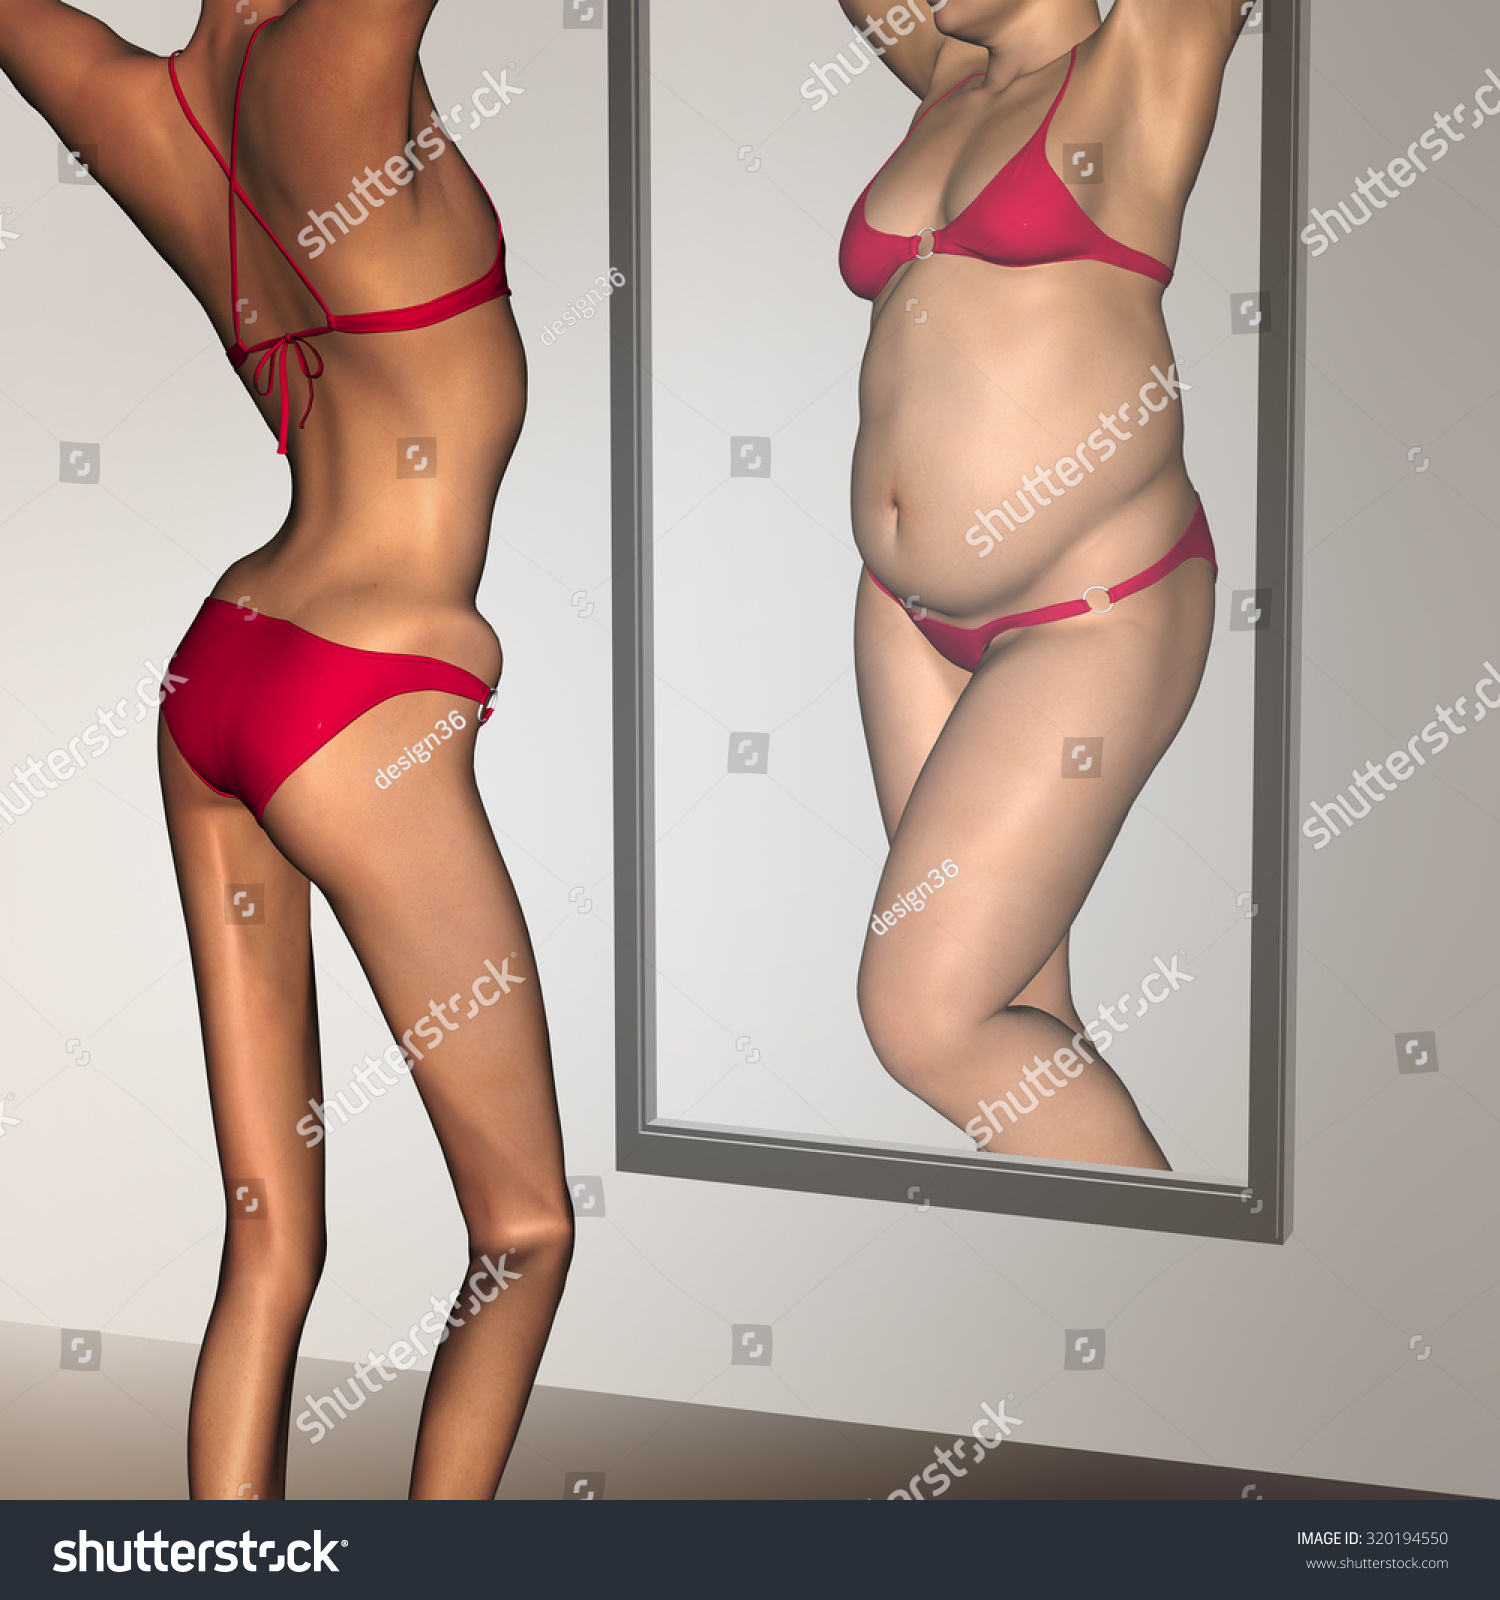 online dating while overweight